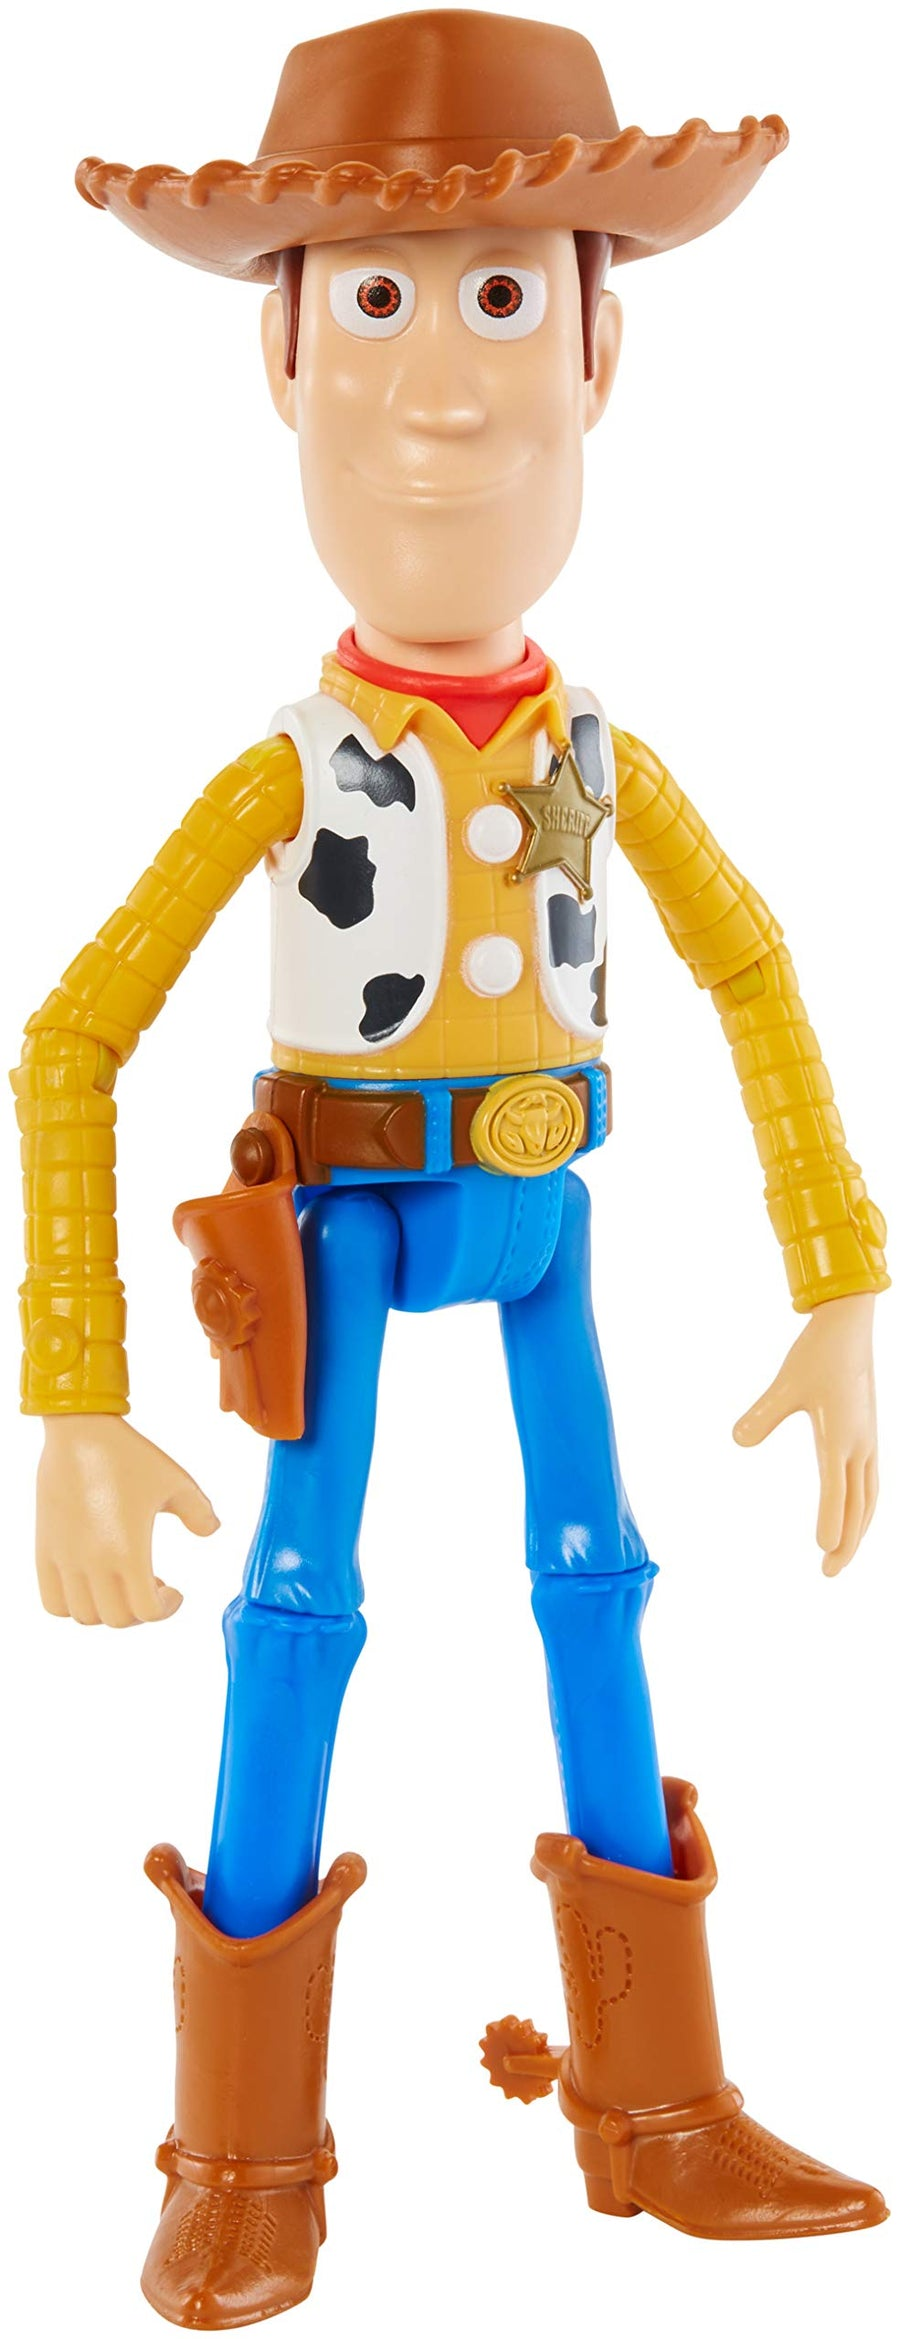 Disney Pixar Toy Story Woody Figure, 9.2